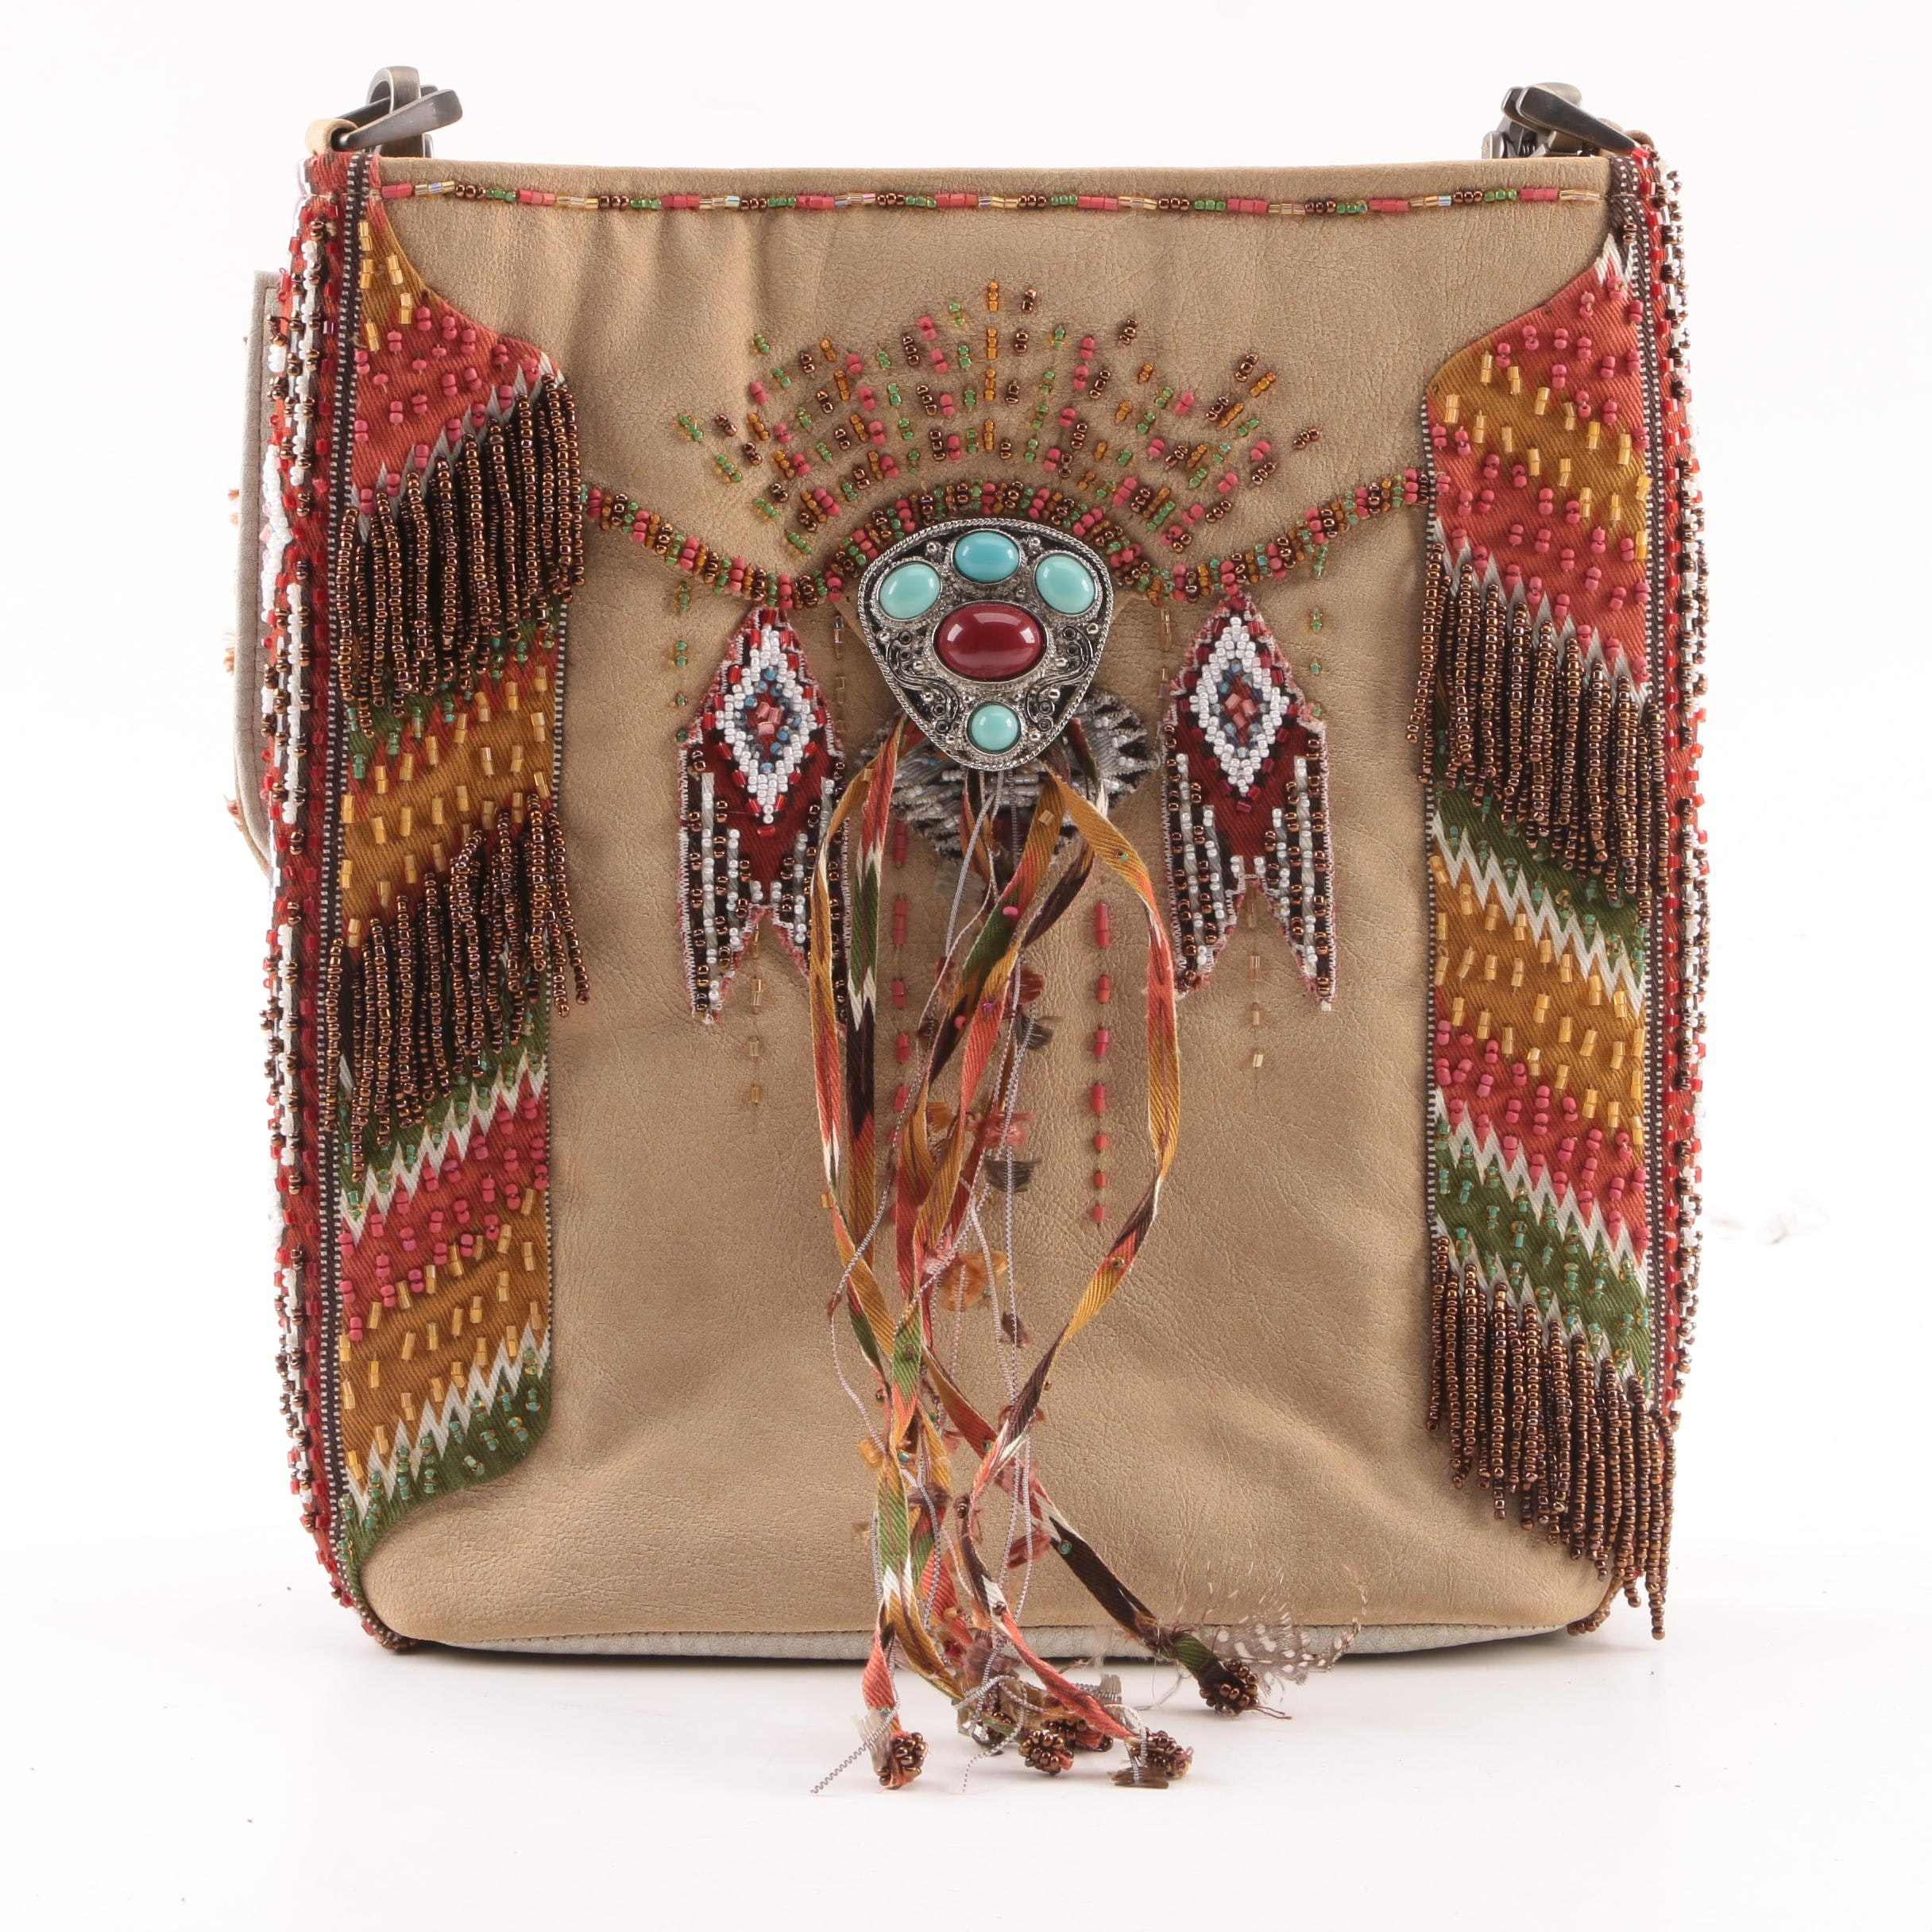 Mary Frances Pow Pow Southwestern Style Beaded Leather Shoulder Bag